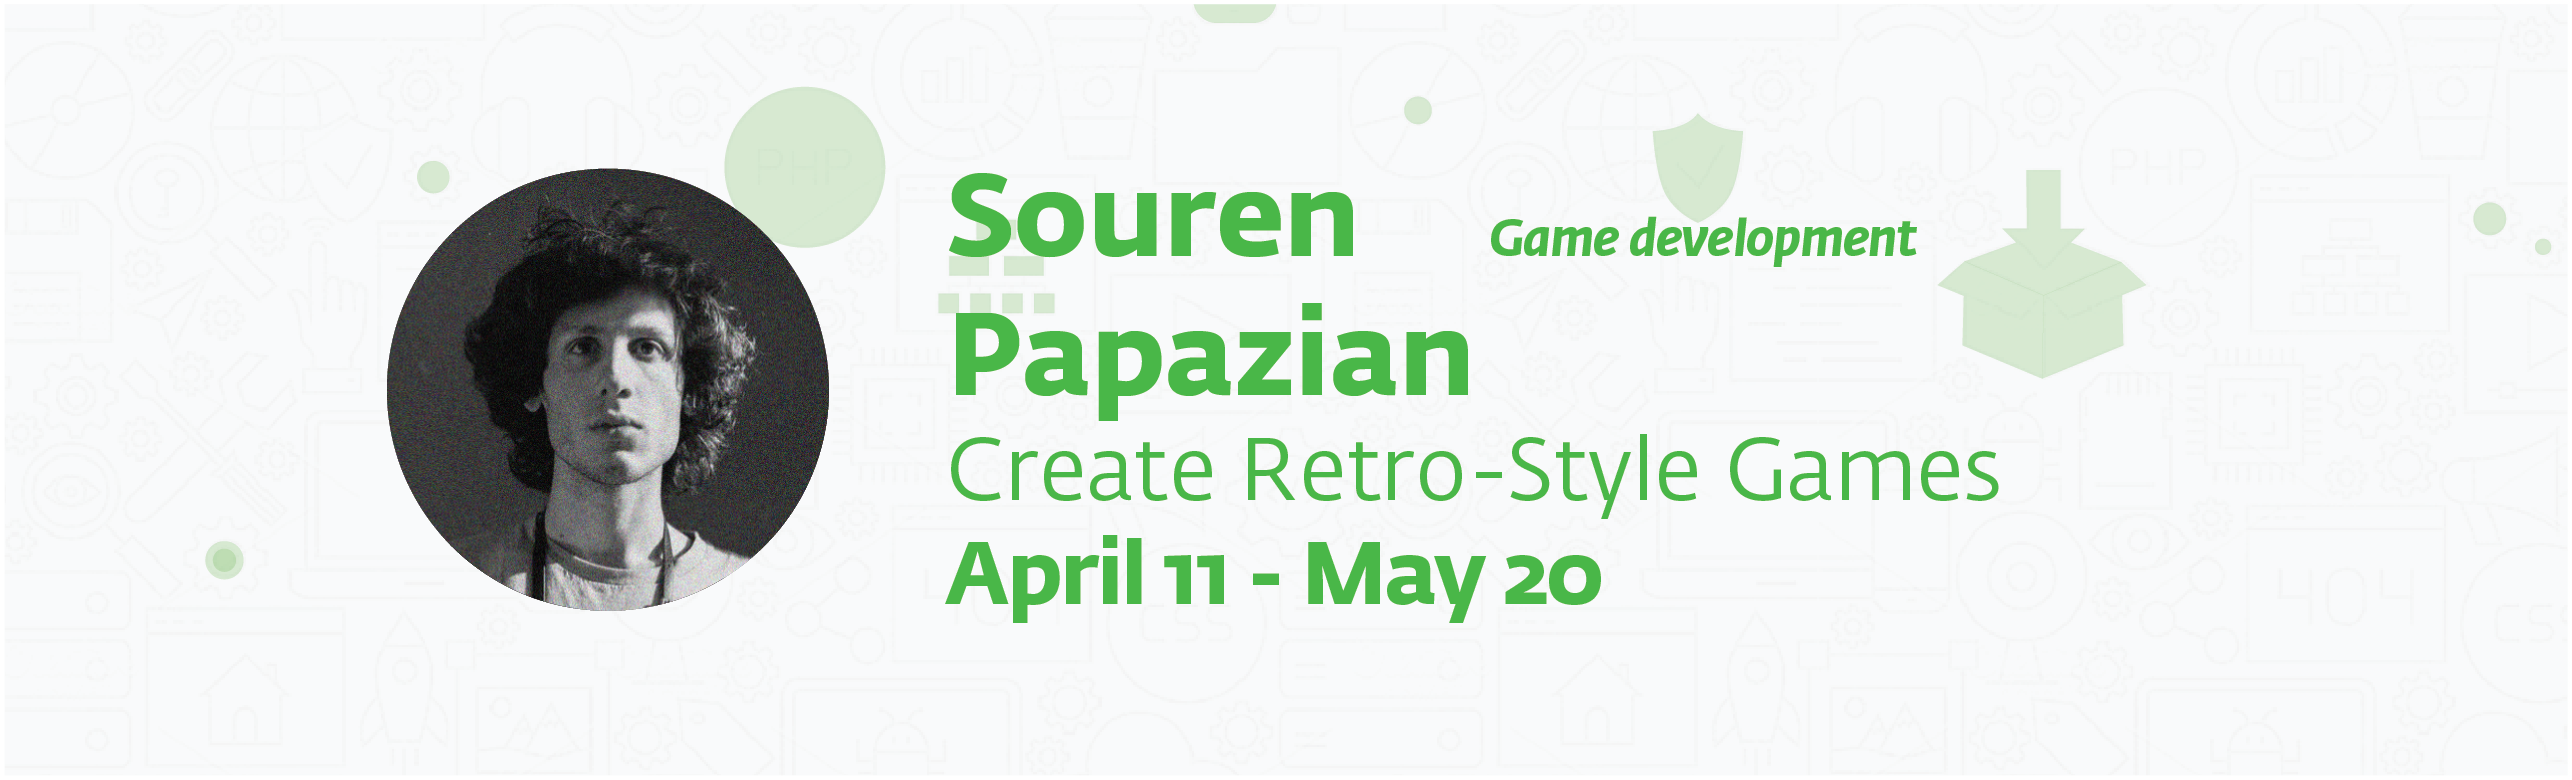 each page 27 - Create Retro-Style Games